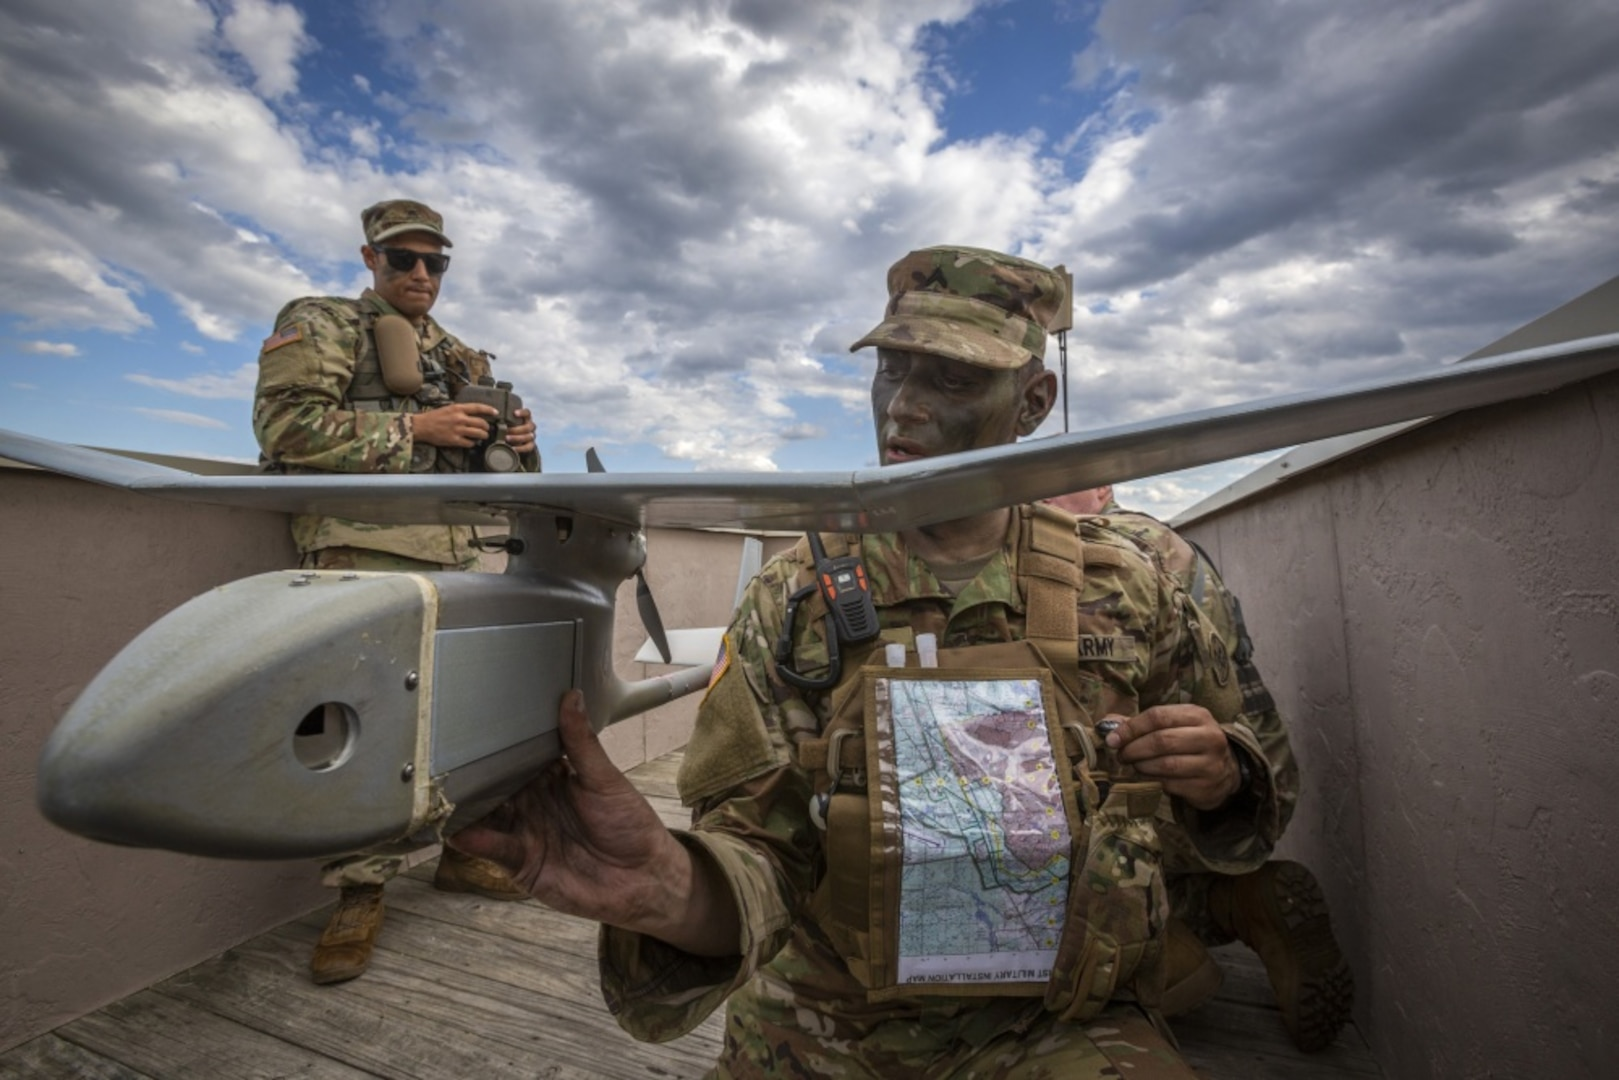 U.S. Army Cpl. Matthew G. Mena, Charlie Battery, 1st Battalion, 258th Field Artillery, New York Army National Guard, performs a systems check on an RQ-11 Raven B, a small unmanned aerial system